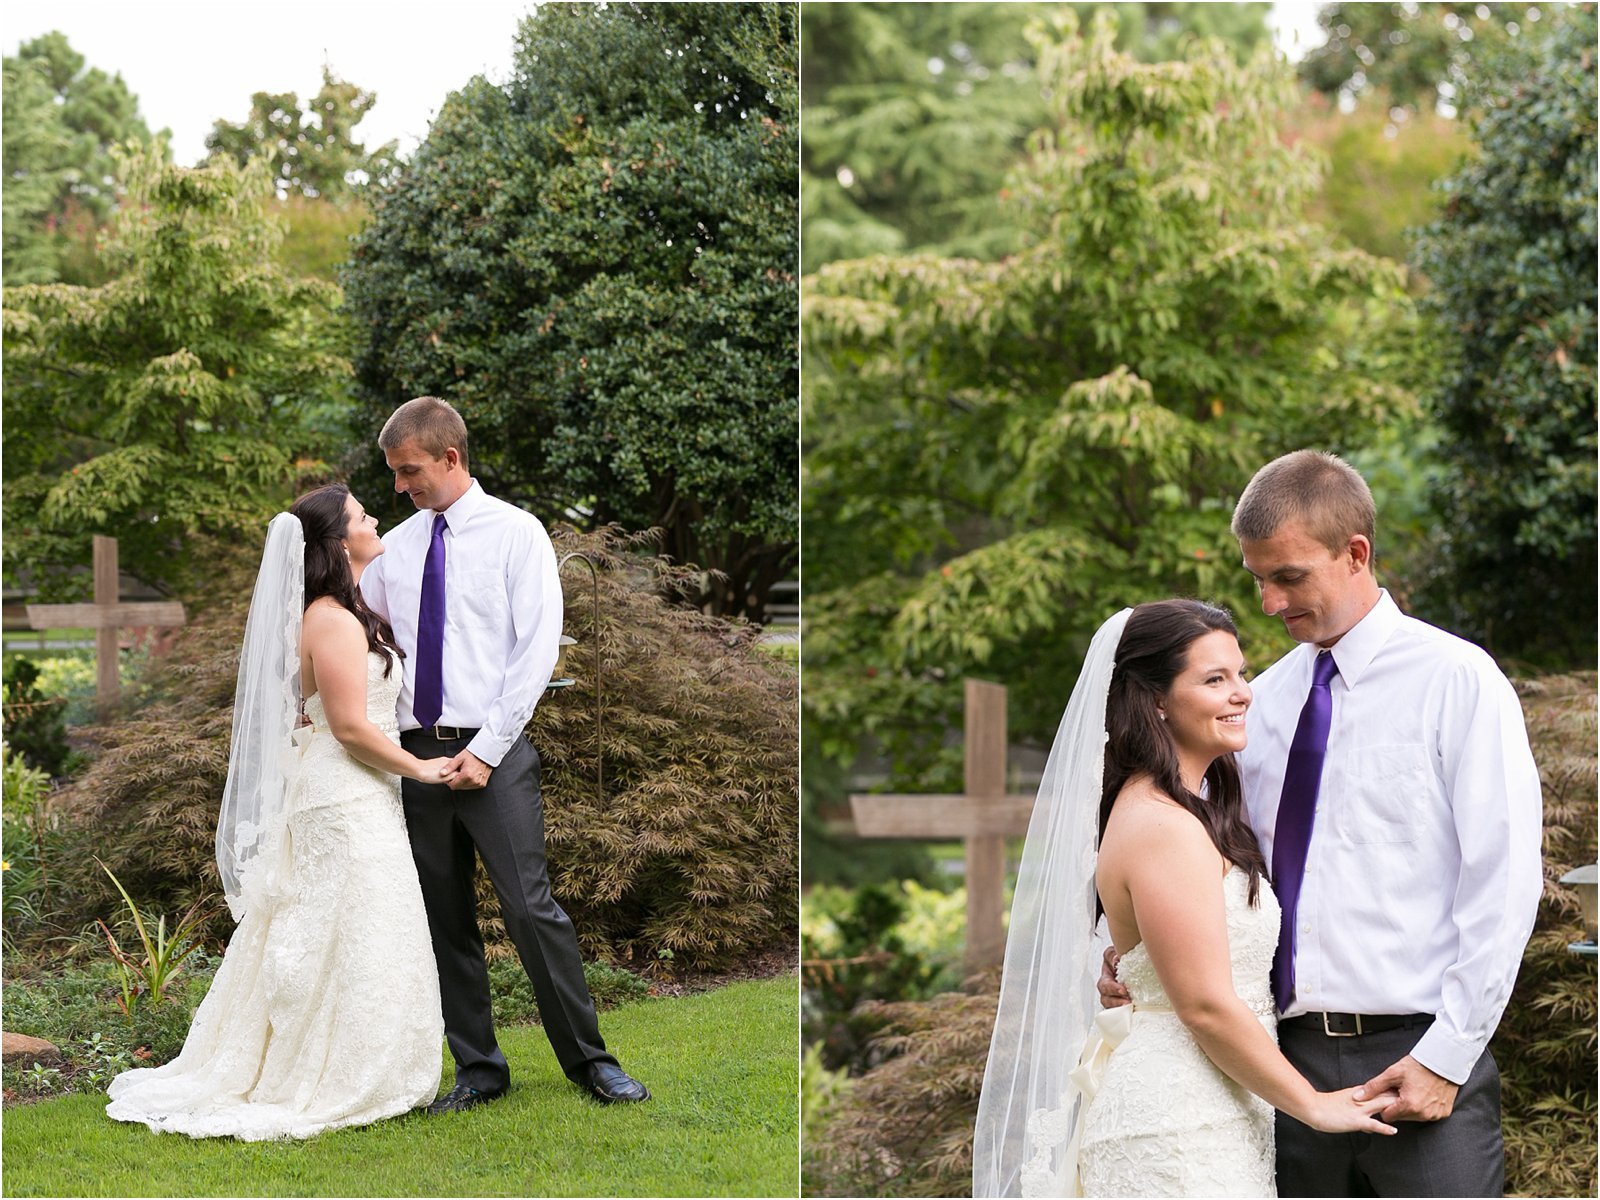 jessica_ryan_photography_bride_groom_suffolk_wedding_virginia_wedding_photography_hampton_roads_0247